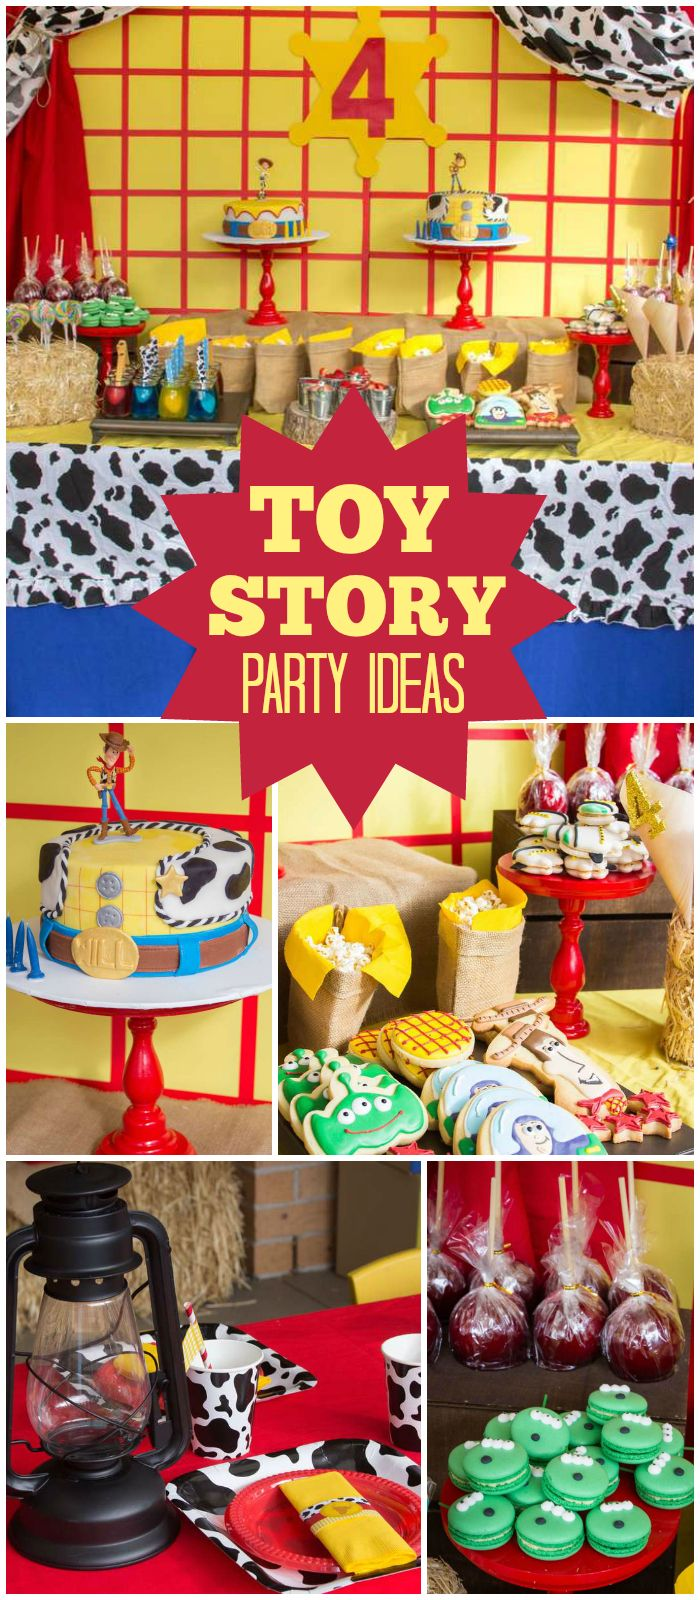 Toy story party ideas birthday in a box - At This Twins Toy Story Party All The Guests Got A Cowboy Hat And